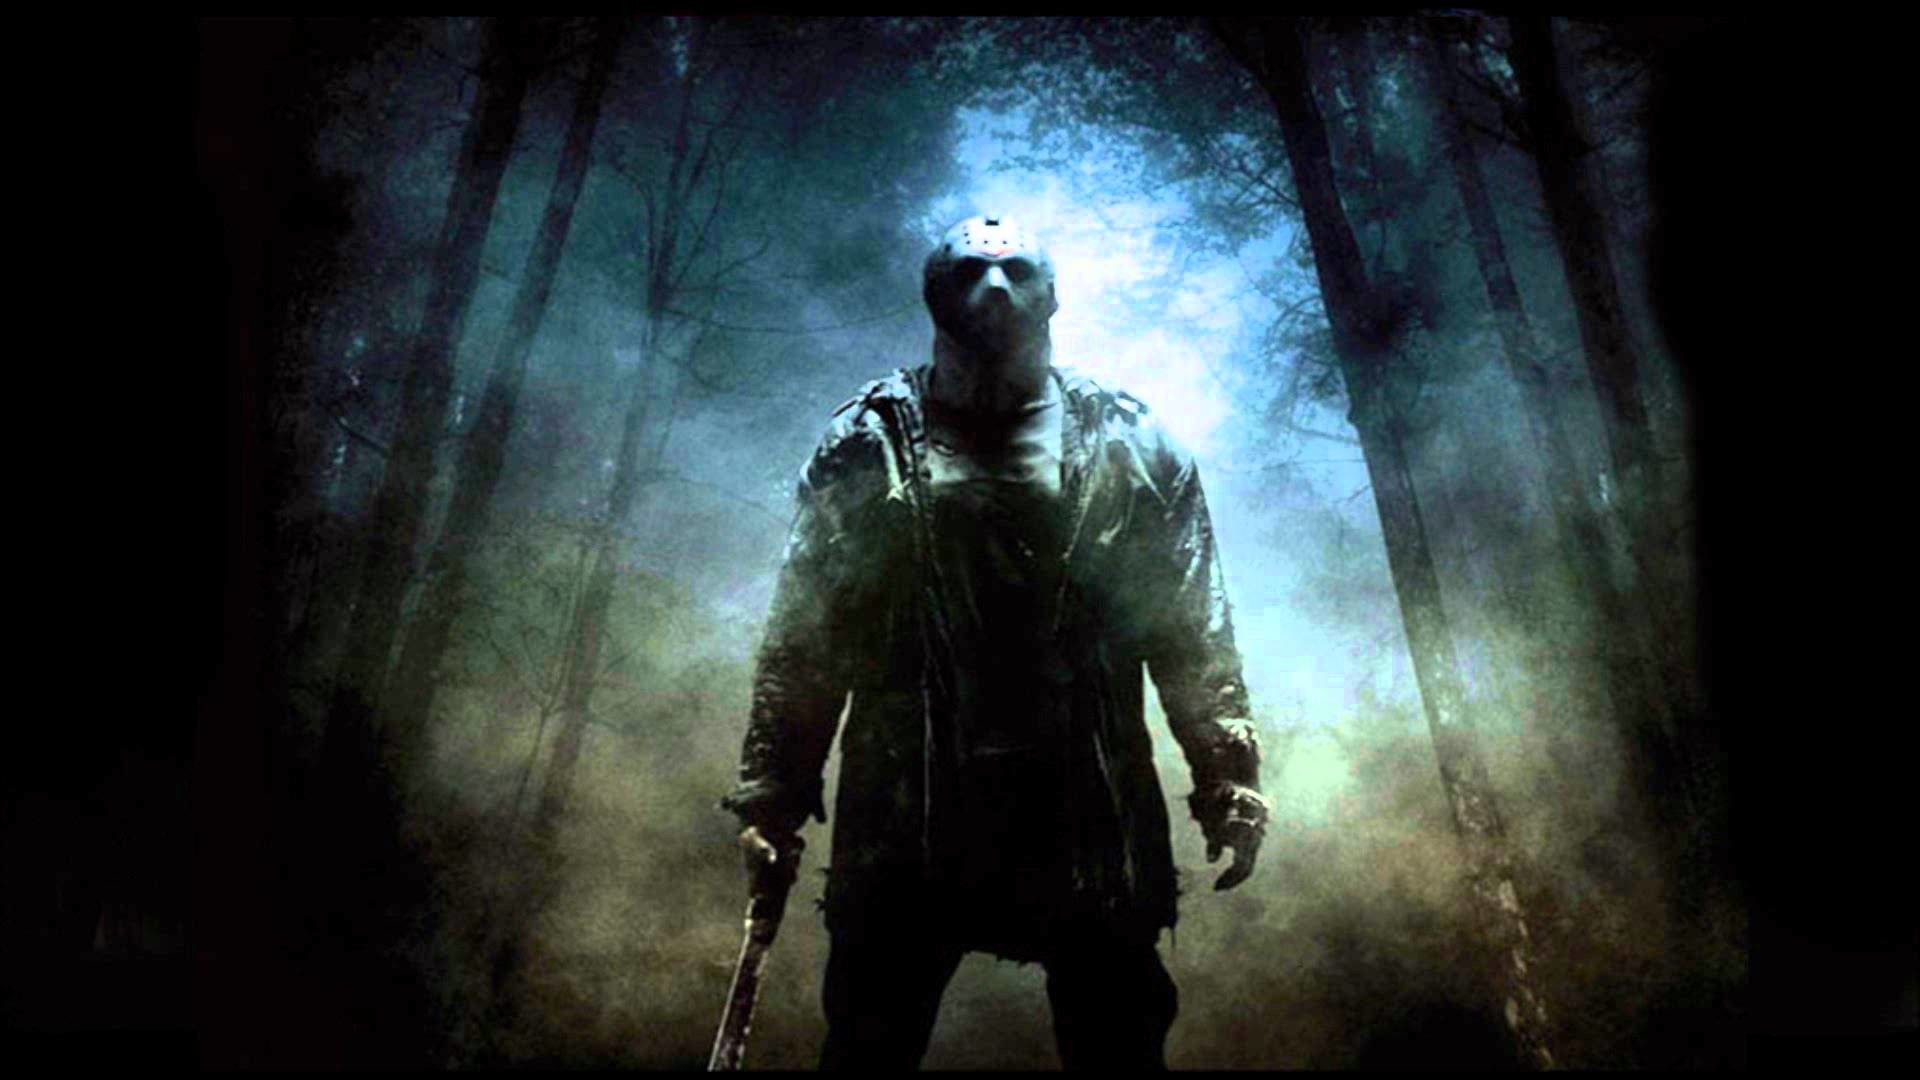 1920x1080 Jason Voorhees Wallpapers - WallpaperSafari